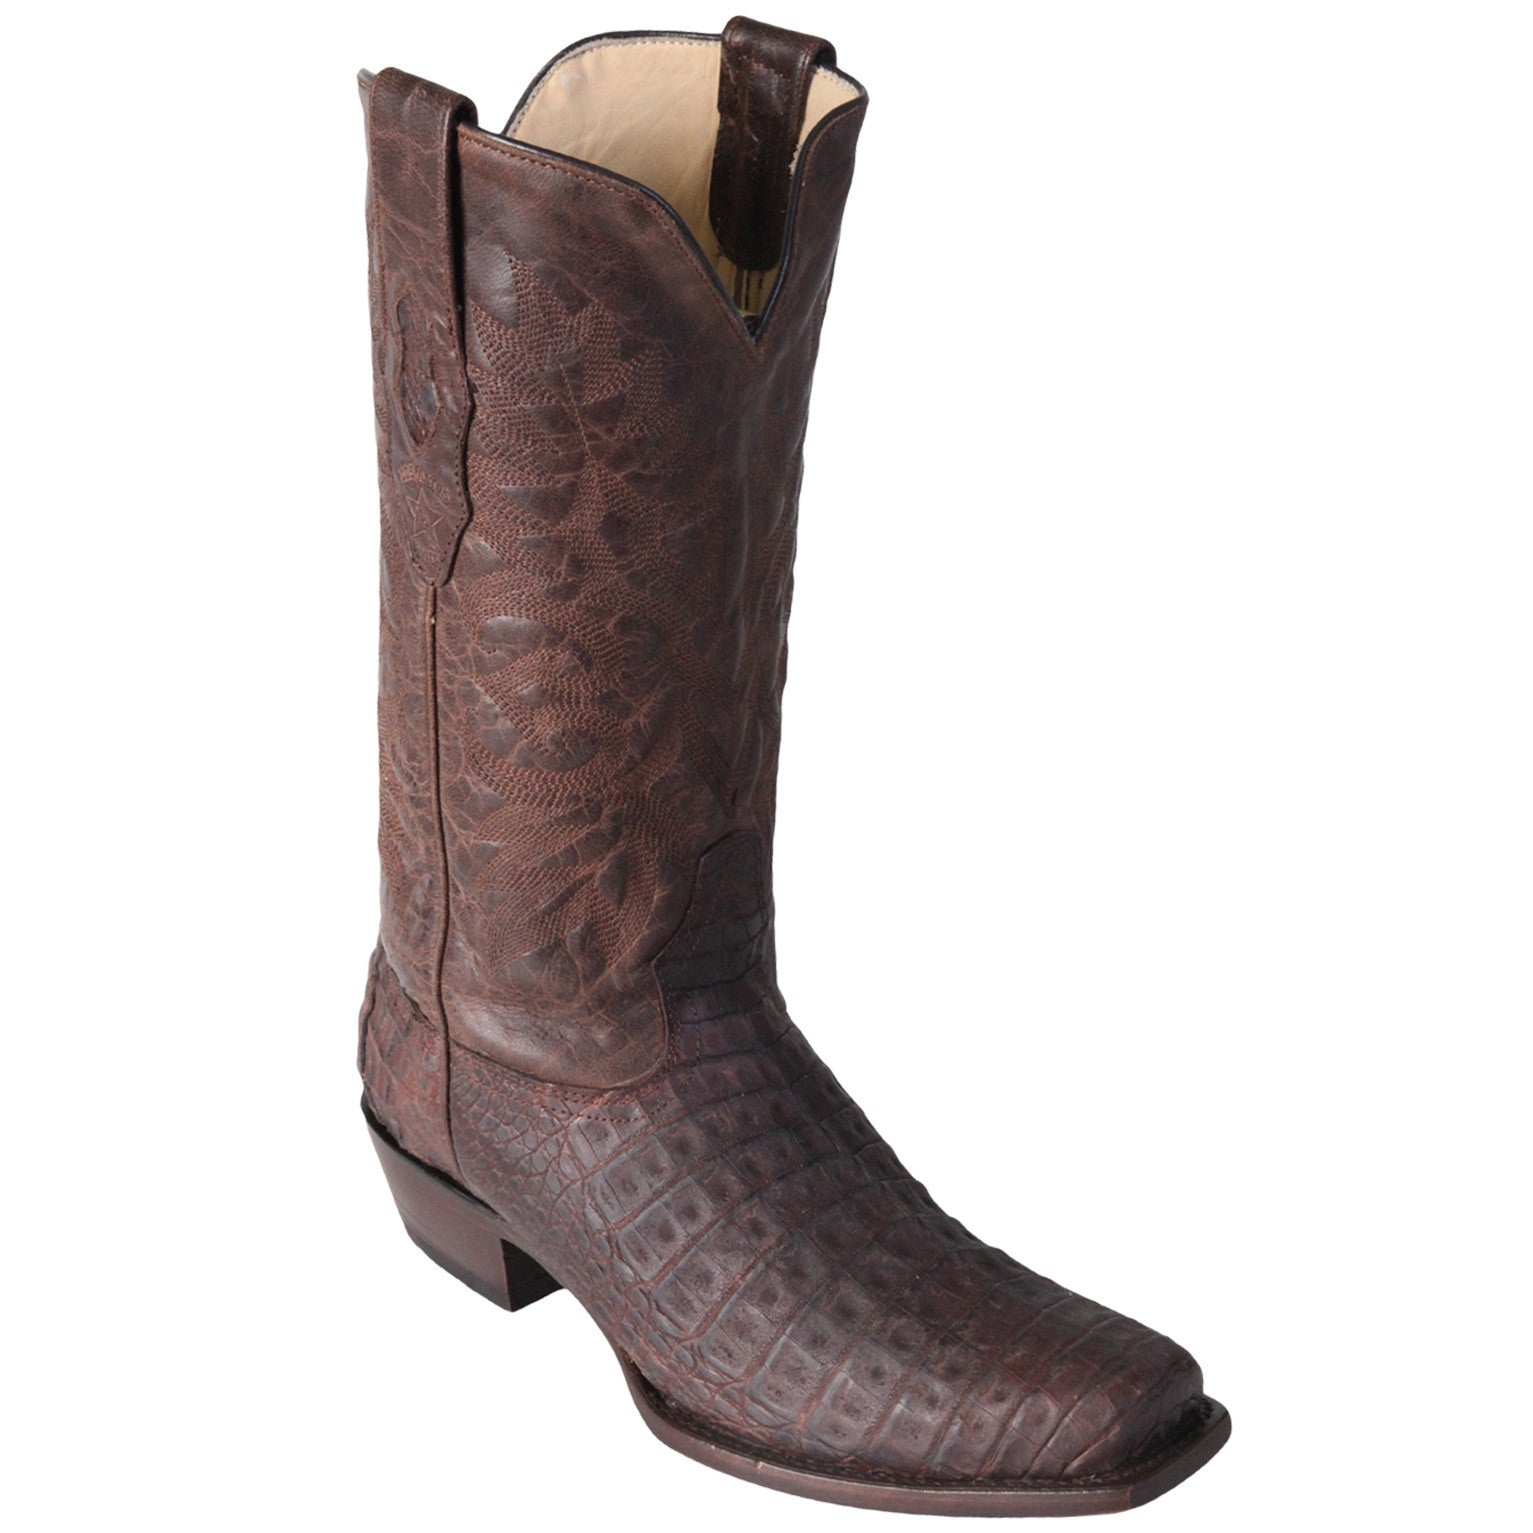 Los Altos Men's Greasy Finish Caiman Belly Cowboy Boots